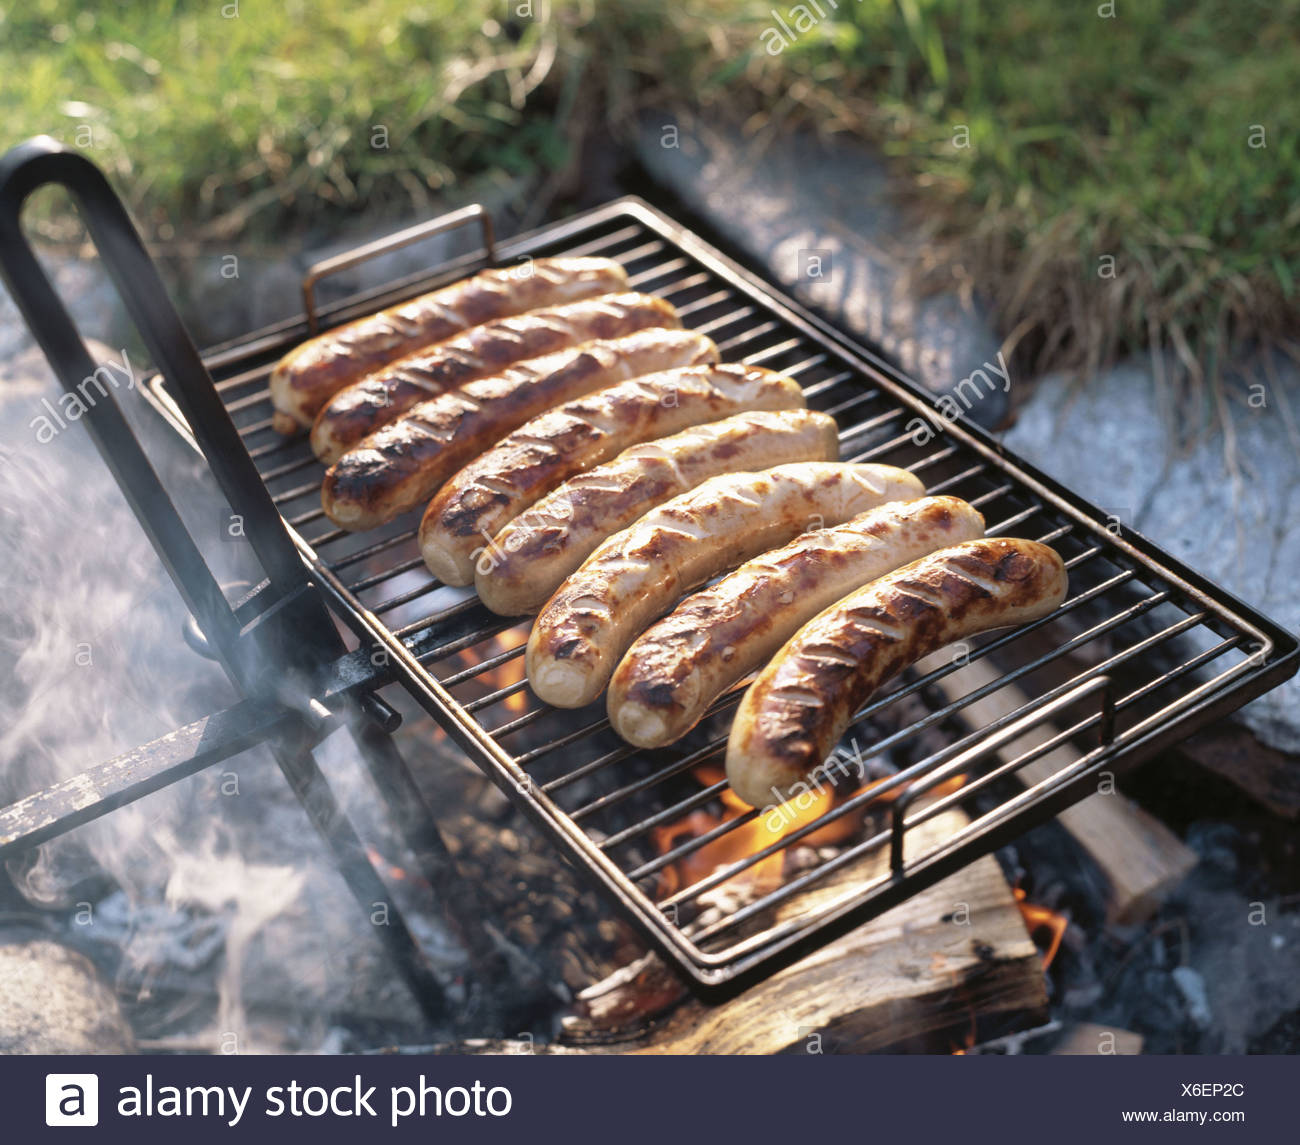 outside sausages fried sausages fireplace courts dishes grill barbecue grilling sausages - Stock Image